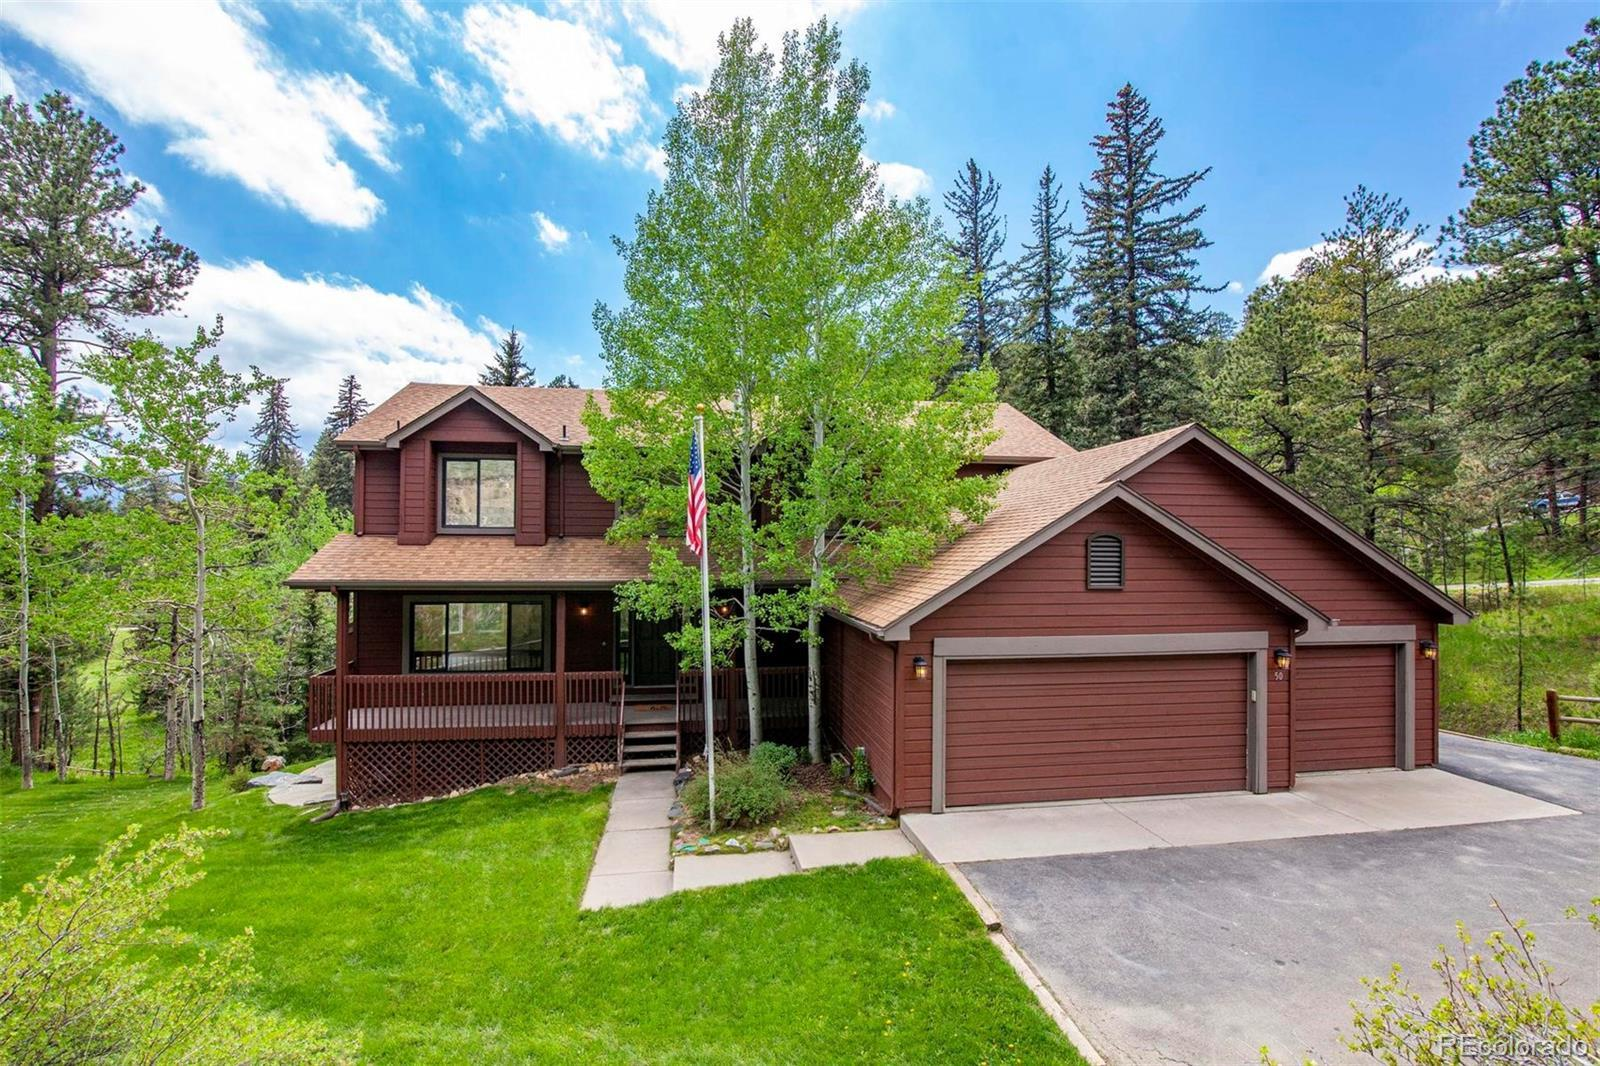 50 Conifer Drive, Evergreen, CO 80439 - #: 5368533